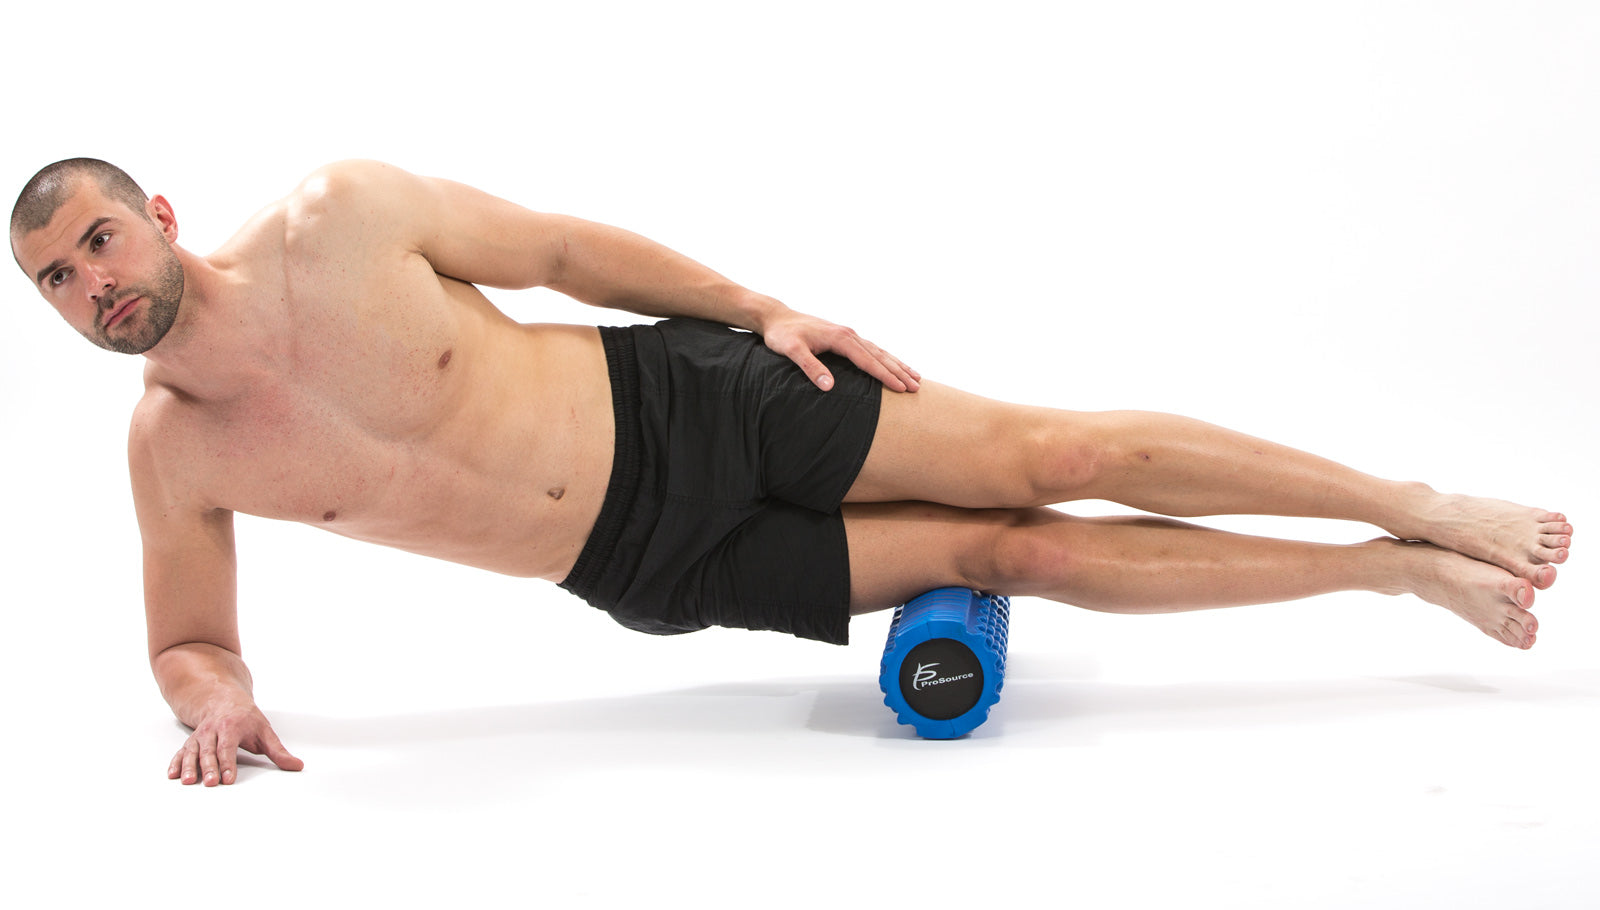 Sports Medicine Foam Roller Muscle Recovery - Prosource